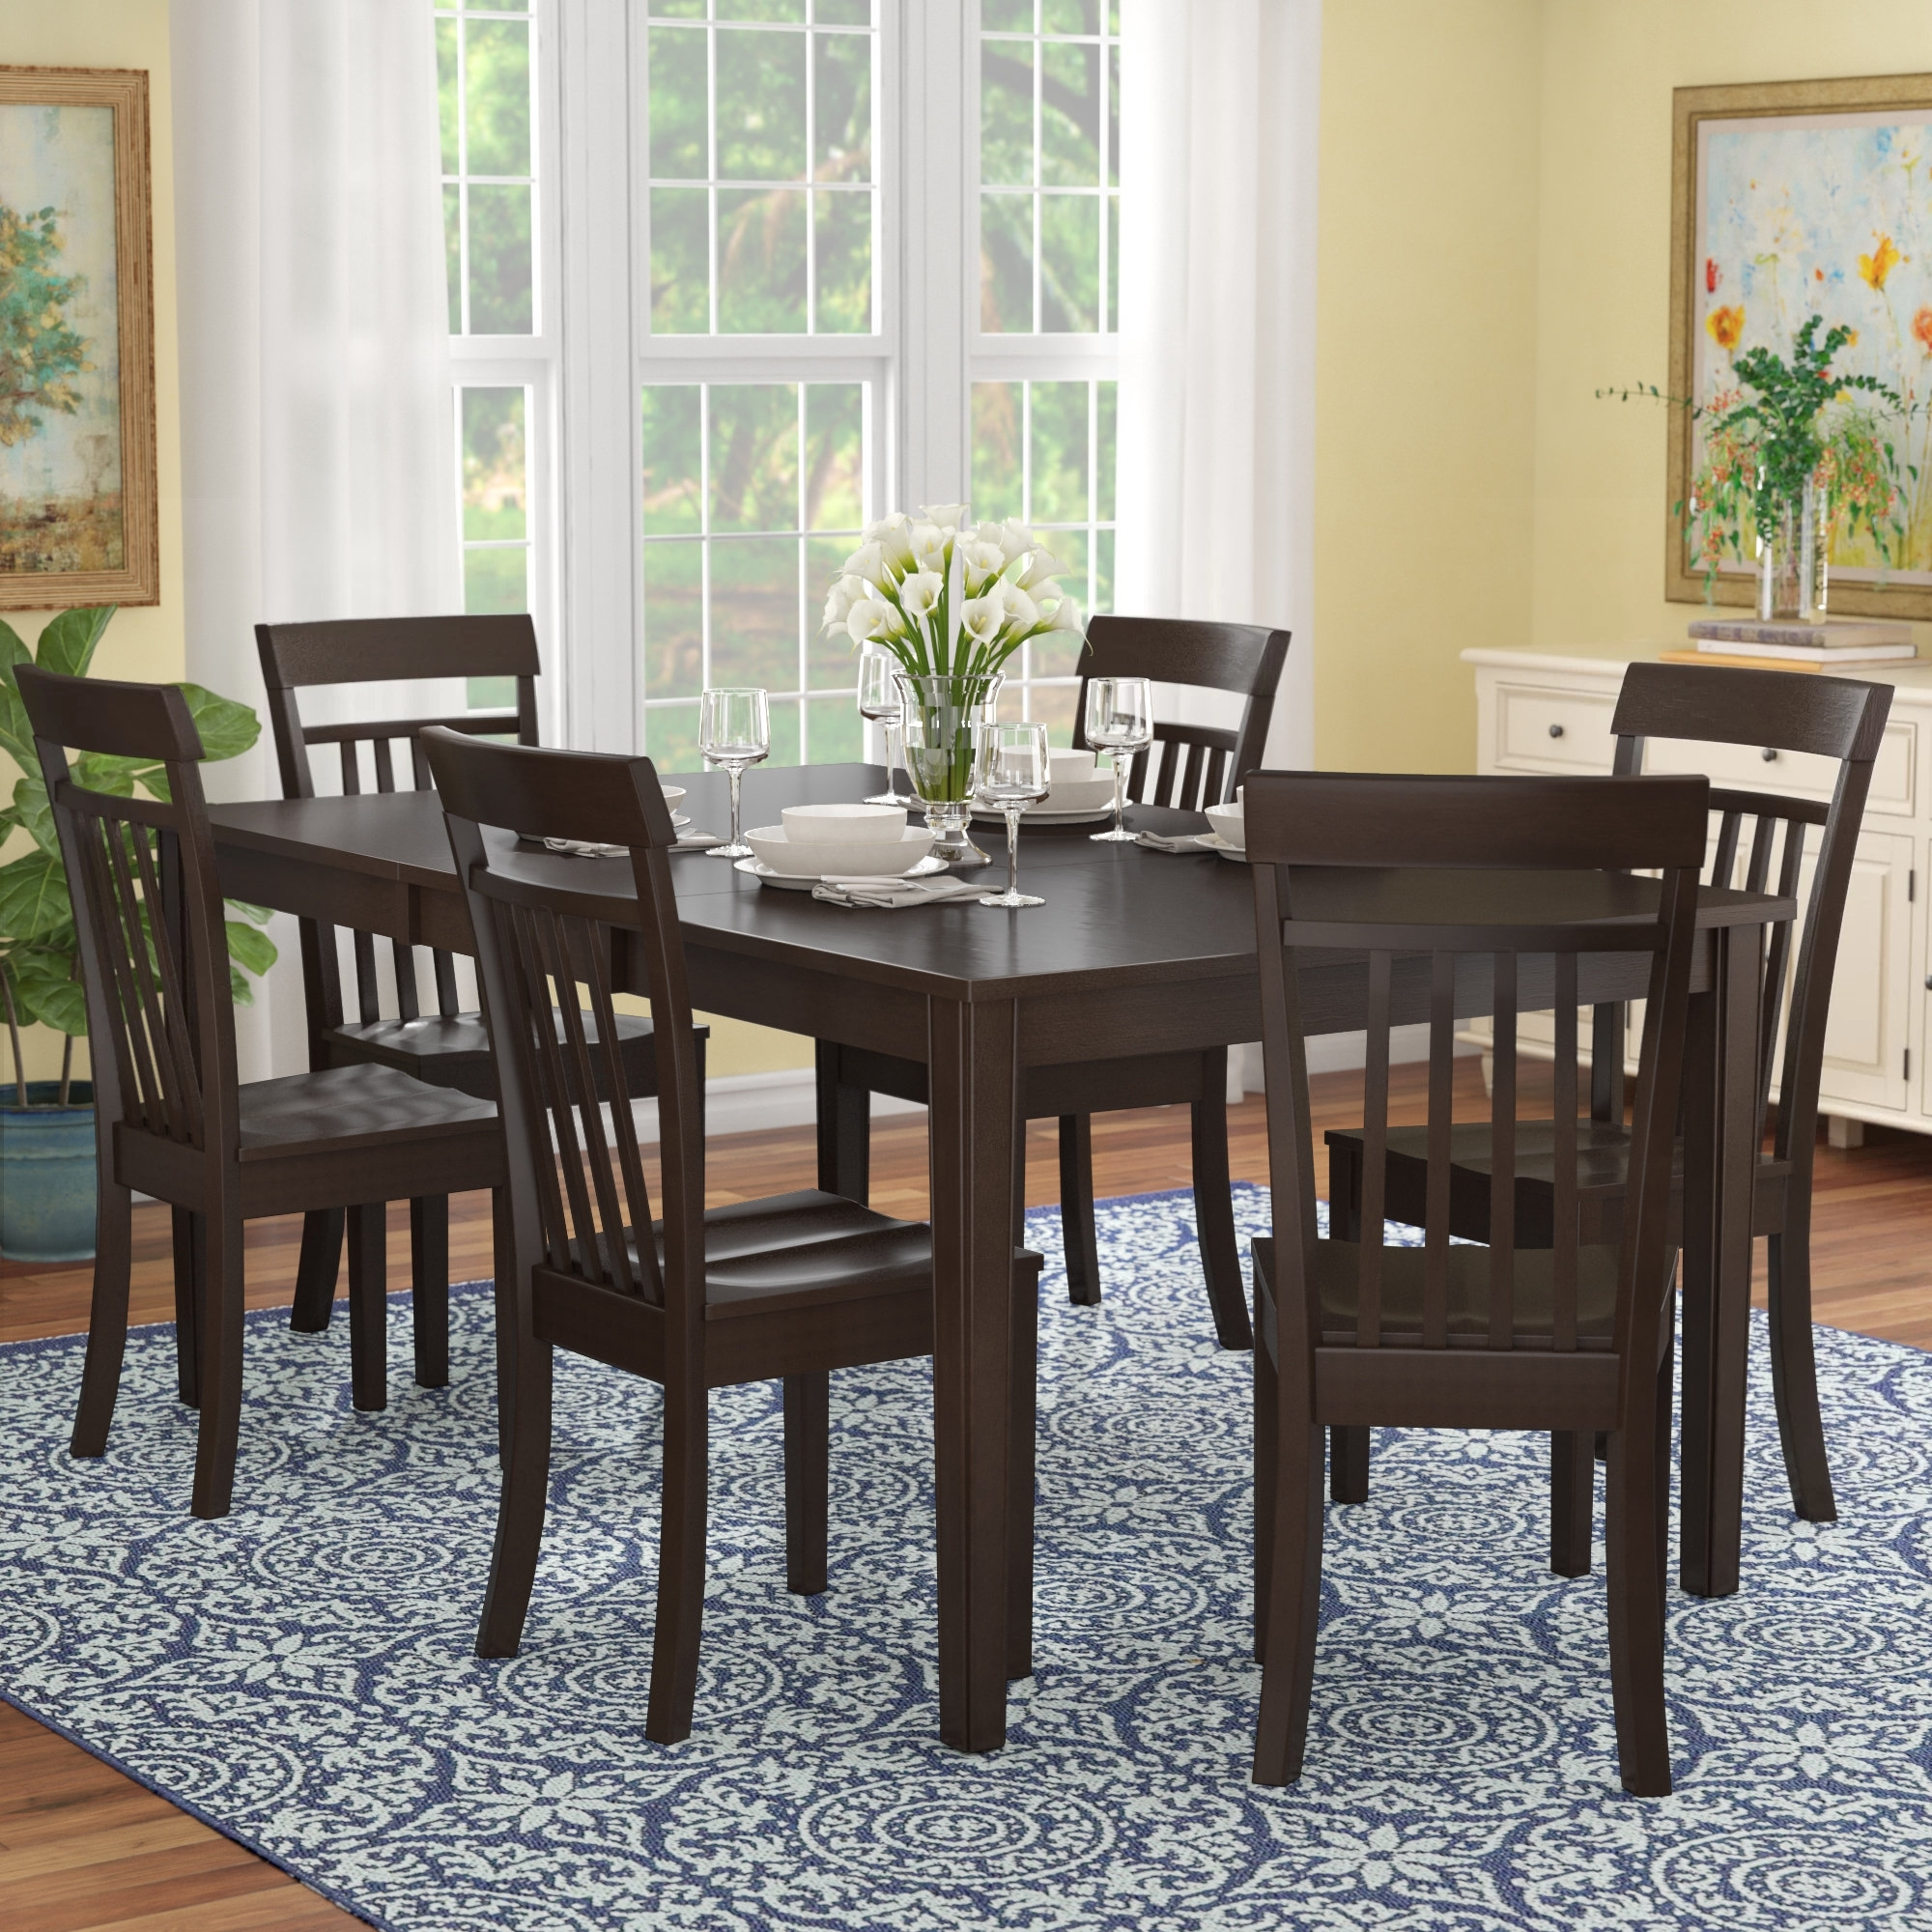 Red Barrel Studio Lindstrom 7 Piece Dining Set & Reviews | Wayfair In Most Popular Craftsman 7 Piece Rectangle Extension Dining Sets With Uph Side Chairs (Photo 16 of 20)